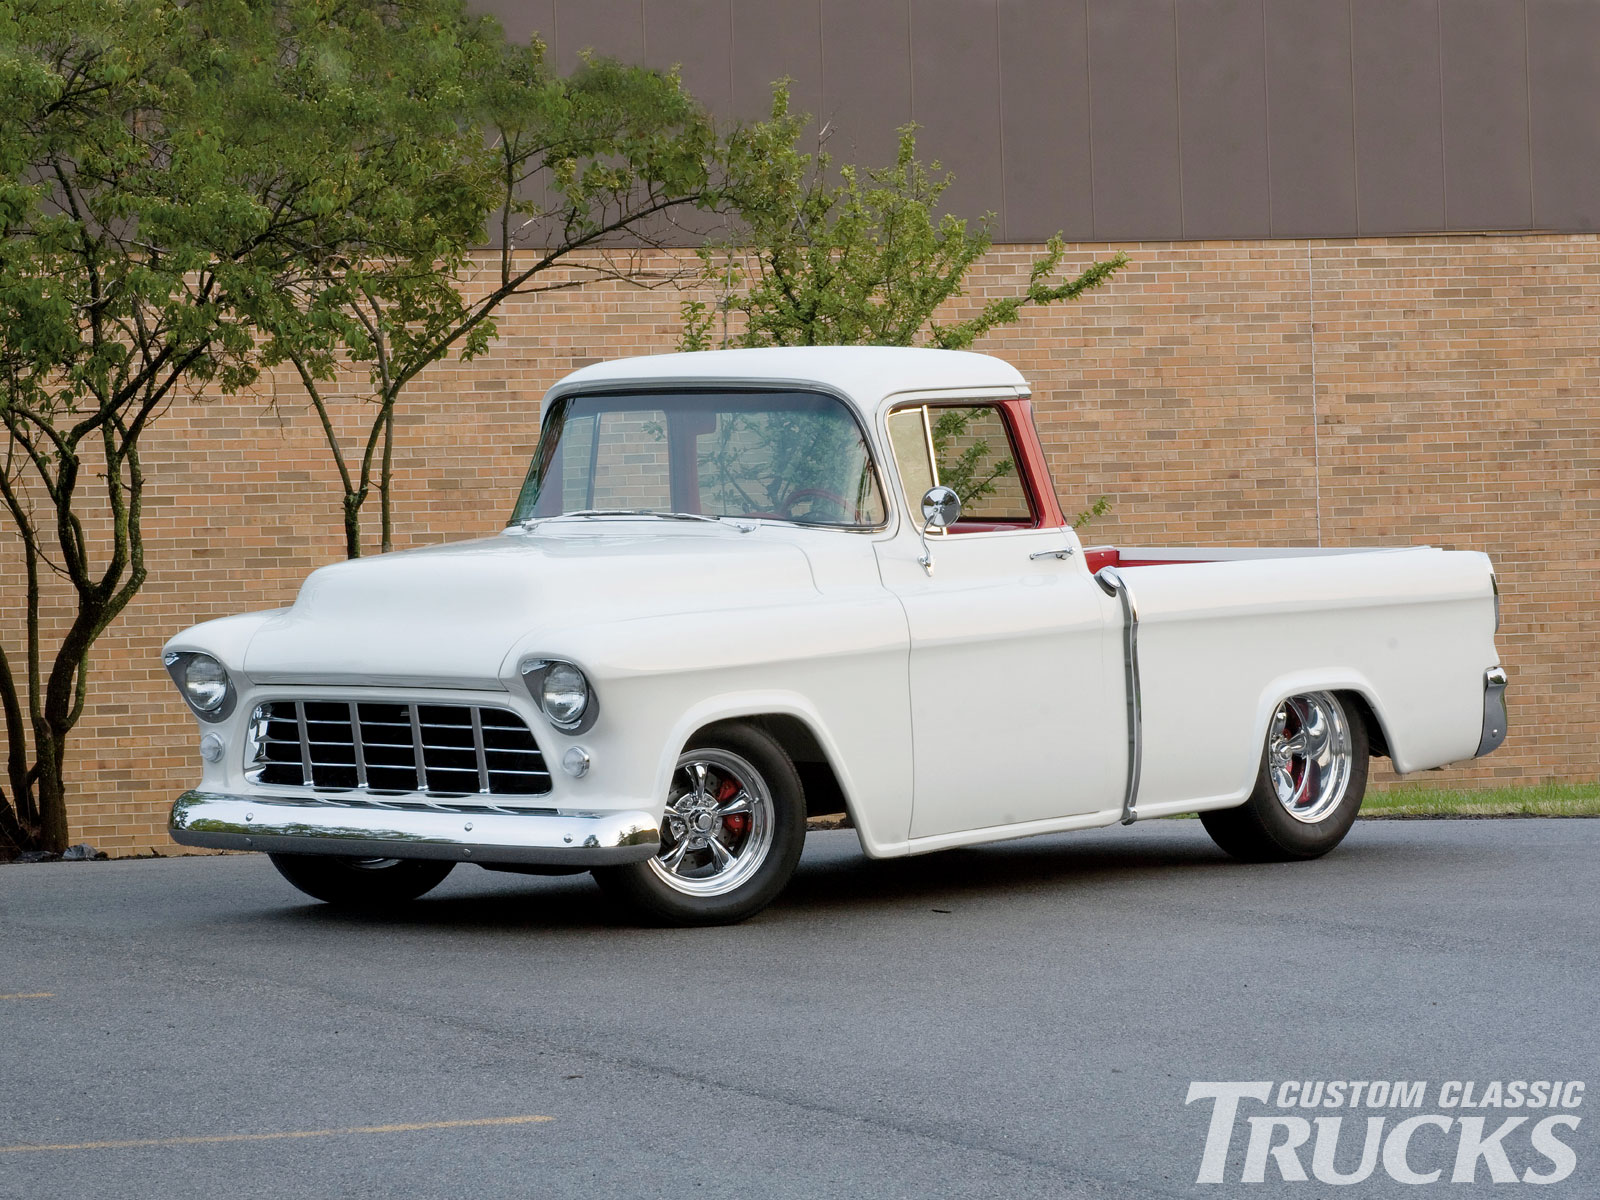 1955 Chevrolet Cameo Pickup Hotrod Pictures Autogado Ford F100 Street Rod Been Updated To A 1961 283 Engine Several Years Ago Most Likely Before The Truck Was Restored Orig Harrison Radiator Dated Correct Generator